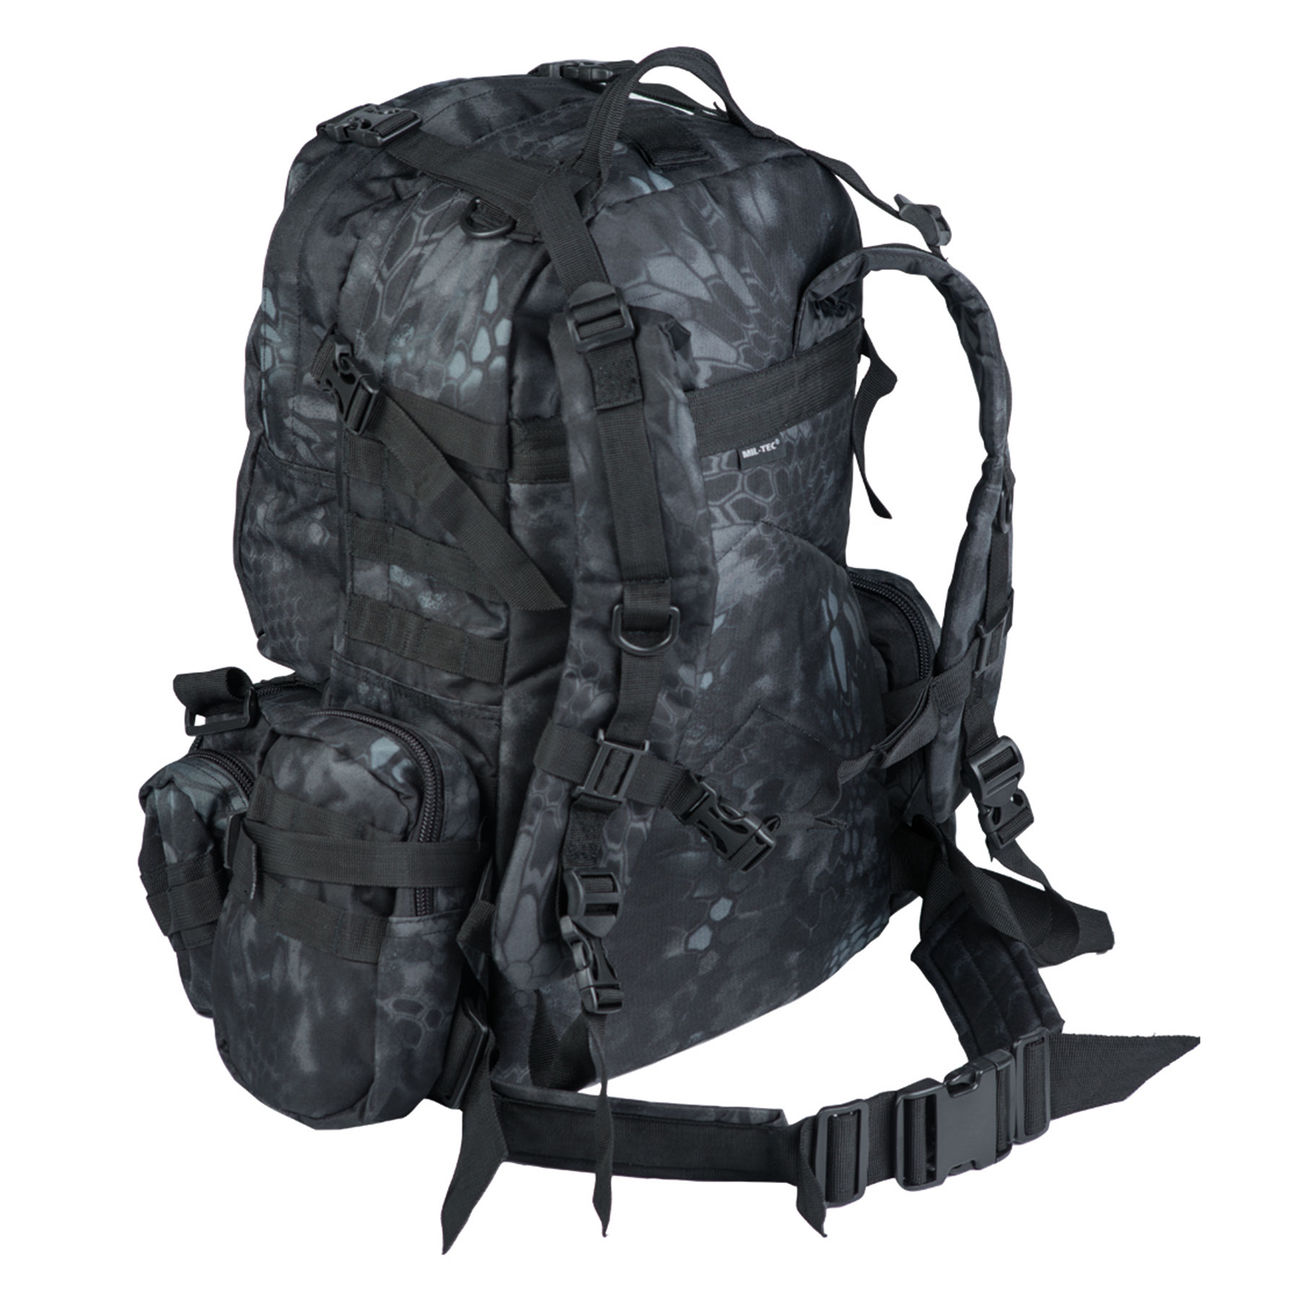 Mil-Tec Rucksack Defense Pack Assembly 36 ltr. mandra night 1